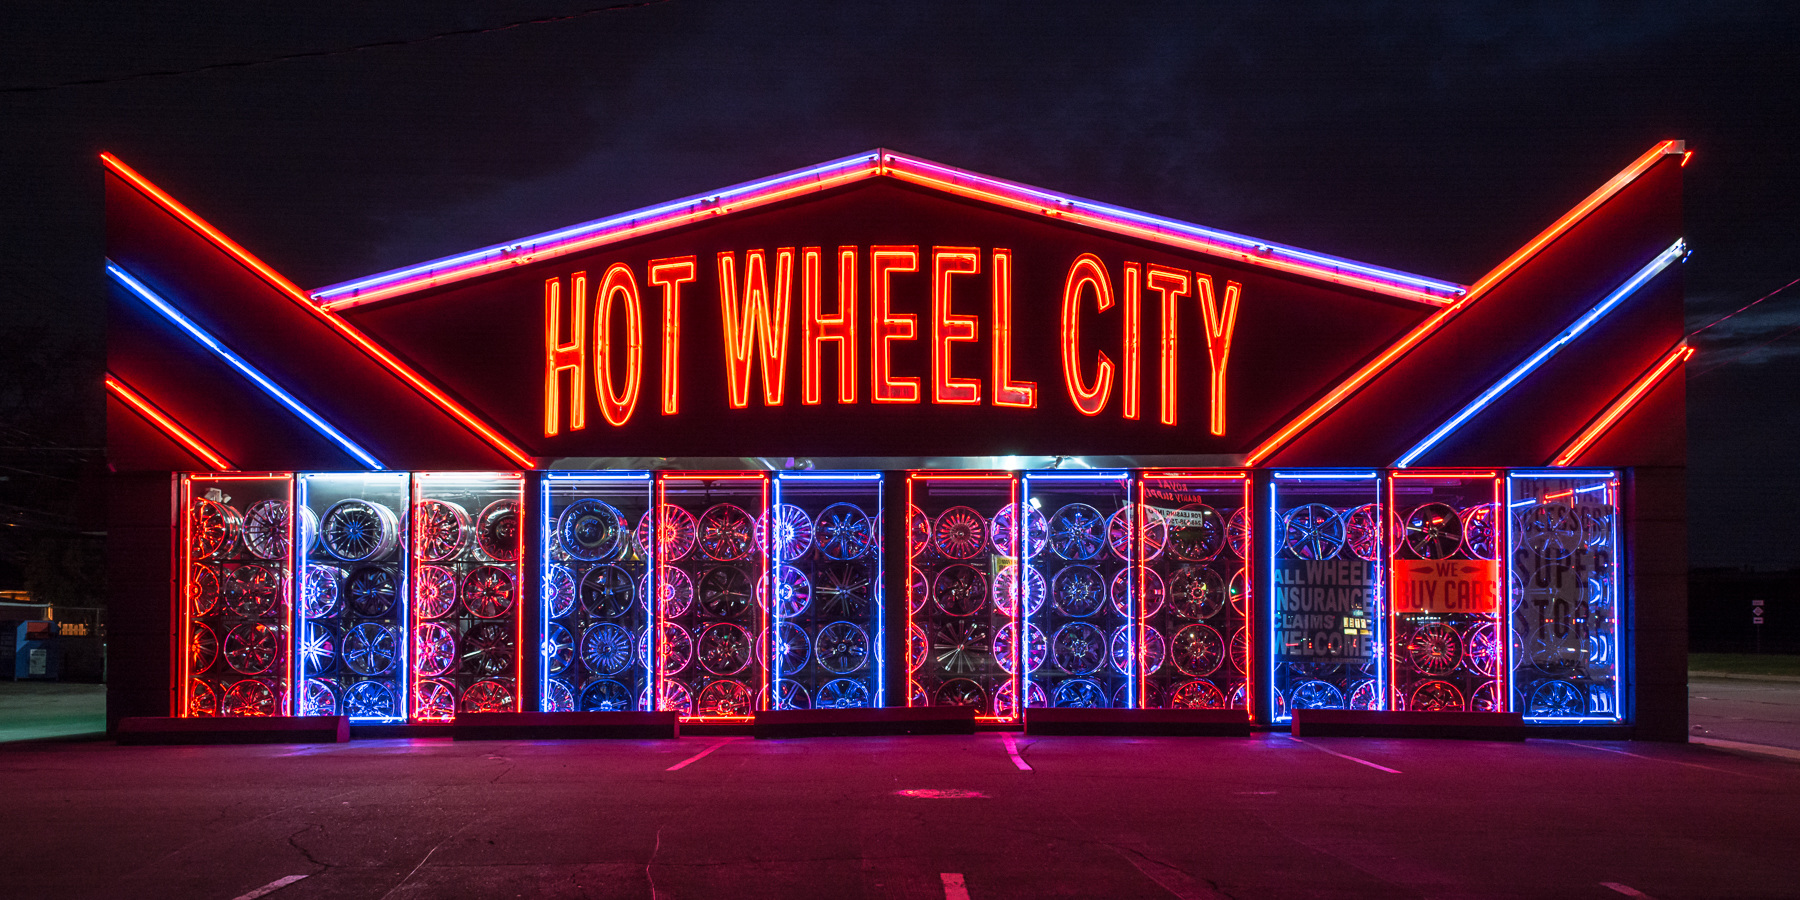 Neon Hot Wheel City  No. 1b